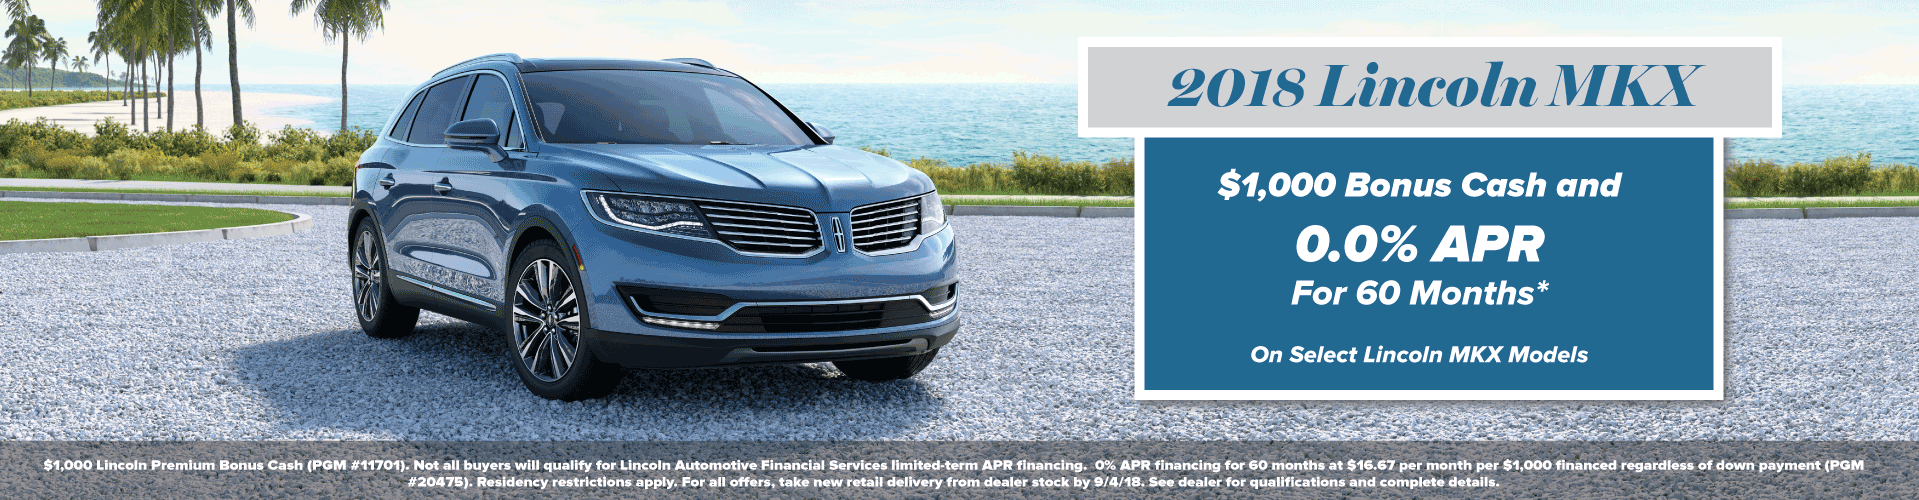 2018 Lincoln MKX Offer